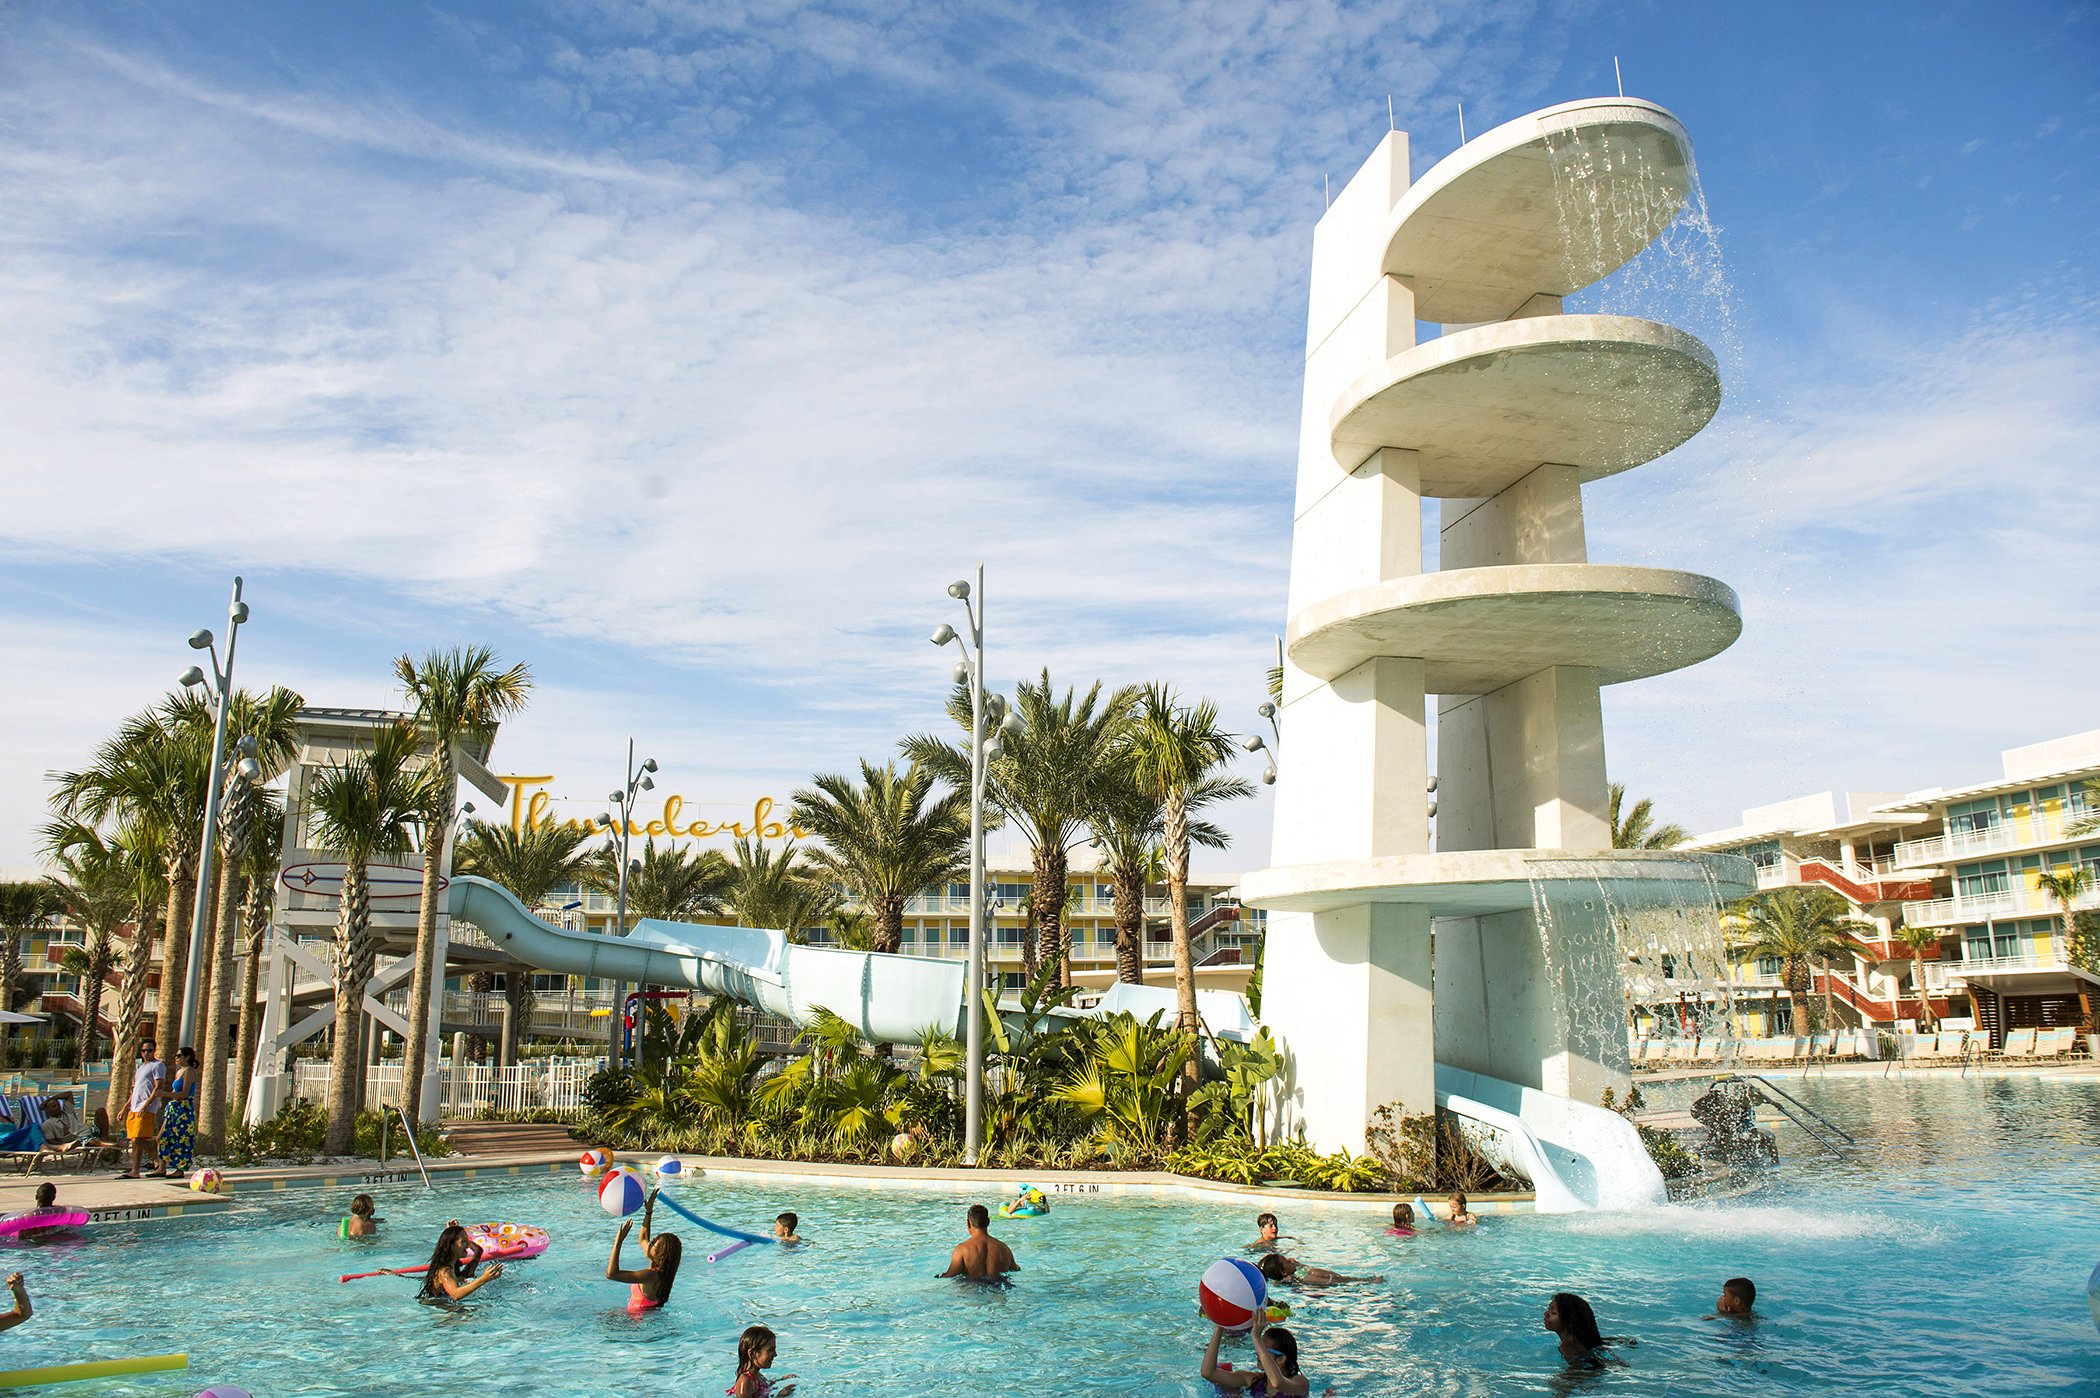 Universal Orlando's fourth on-site hotel, Universal's Cabana Bay Beach Resort